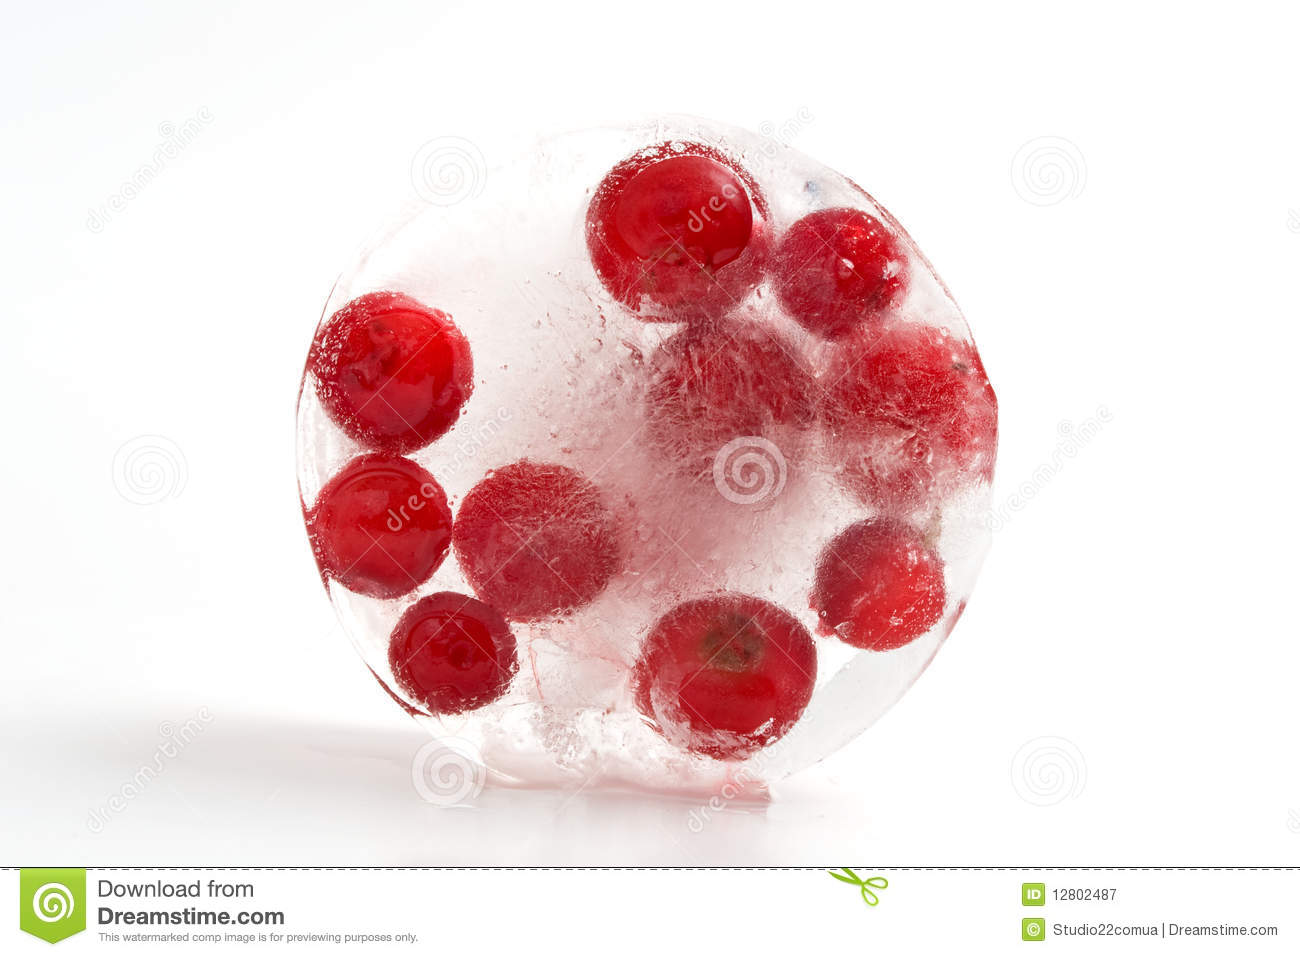 Cranberries_in_ice